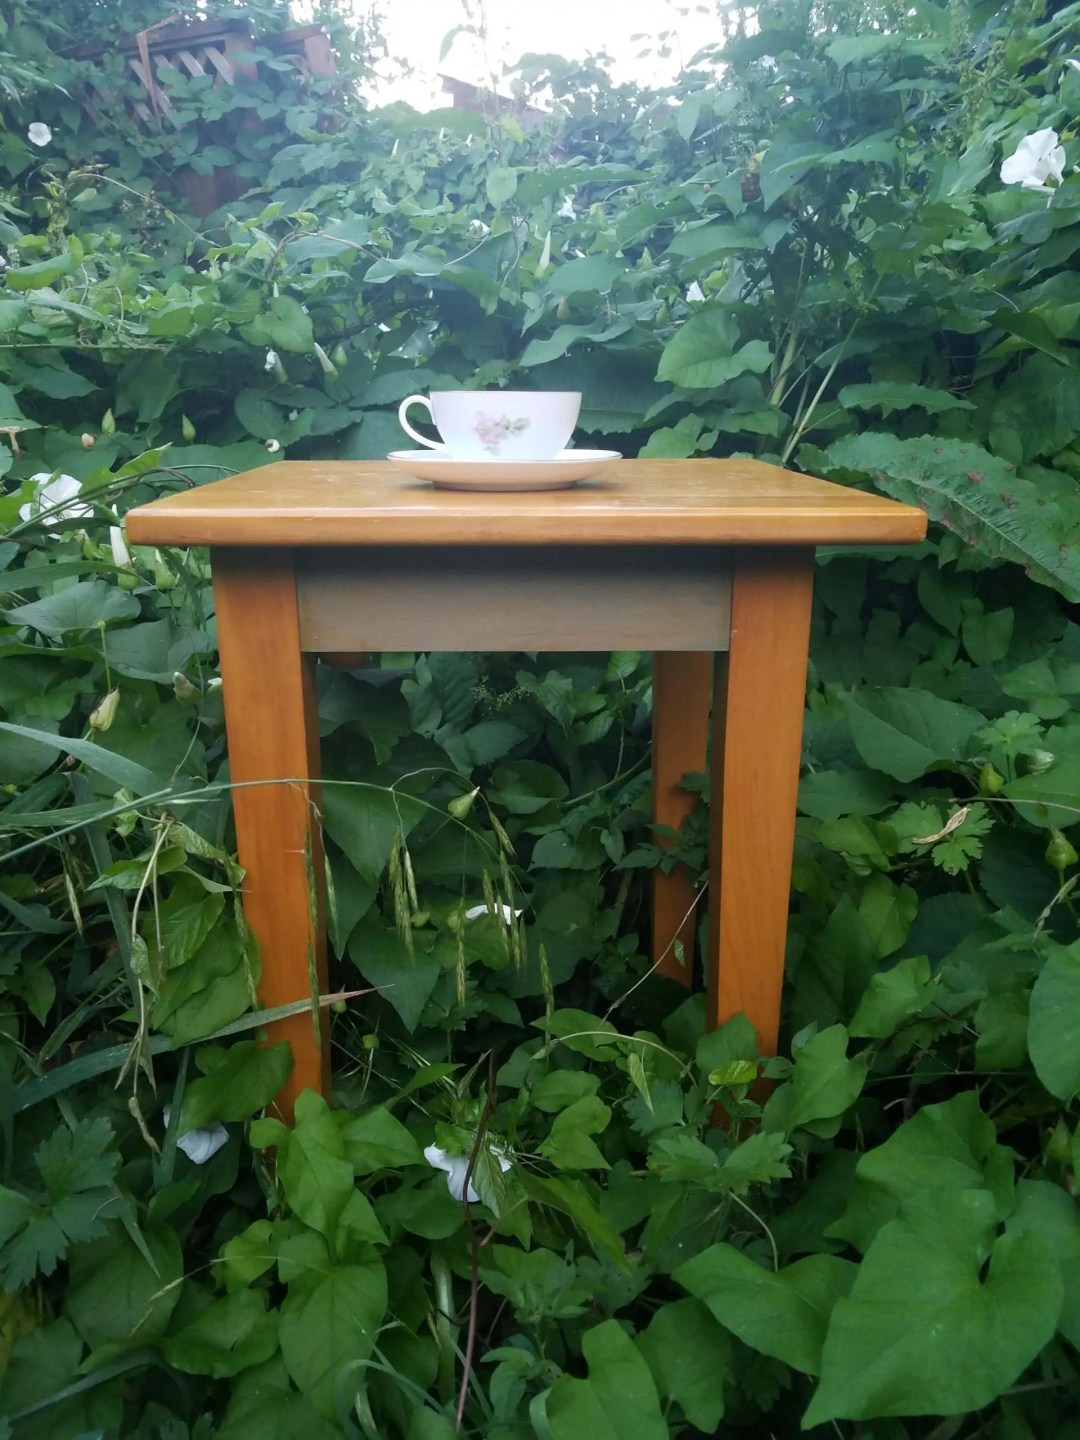 A tea cup and saucer sit on a wooden table in a thicket of vegetation, expressing independence